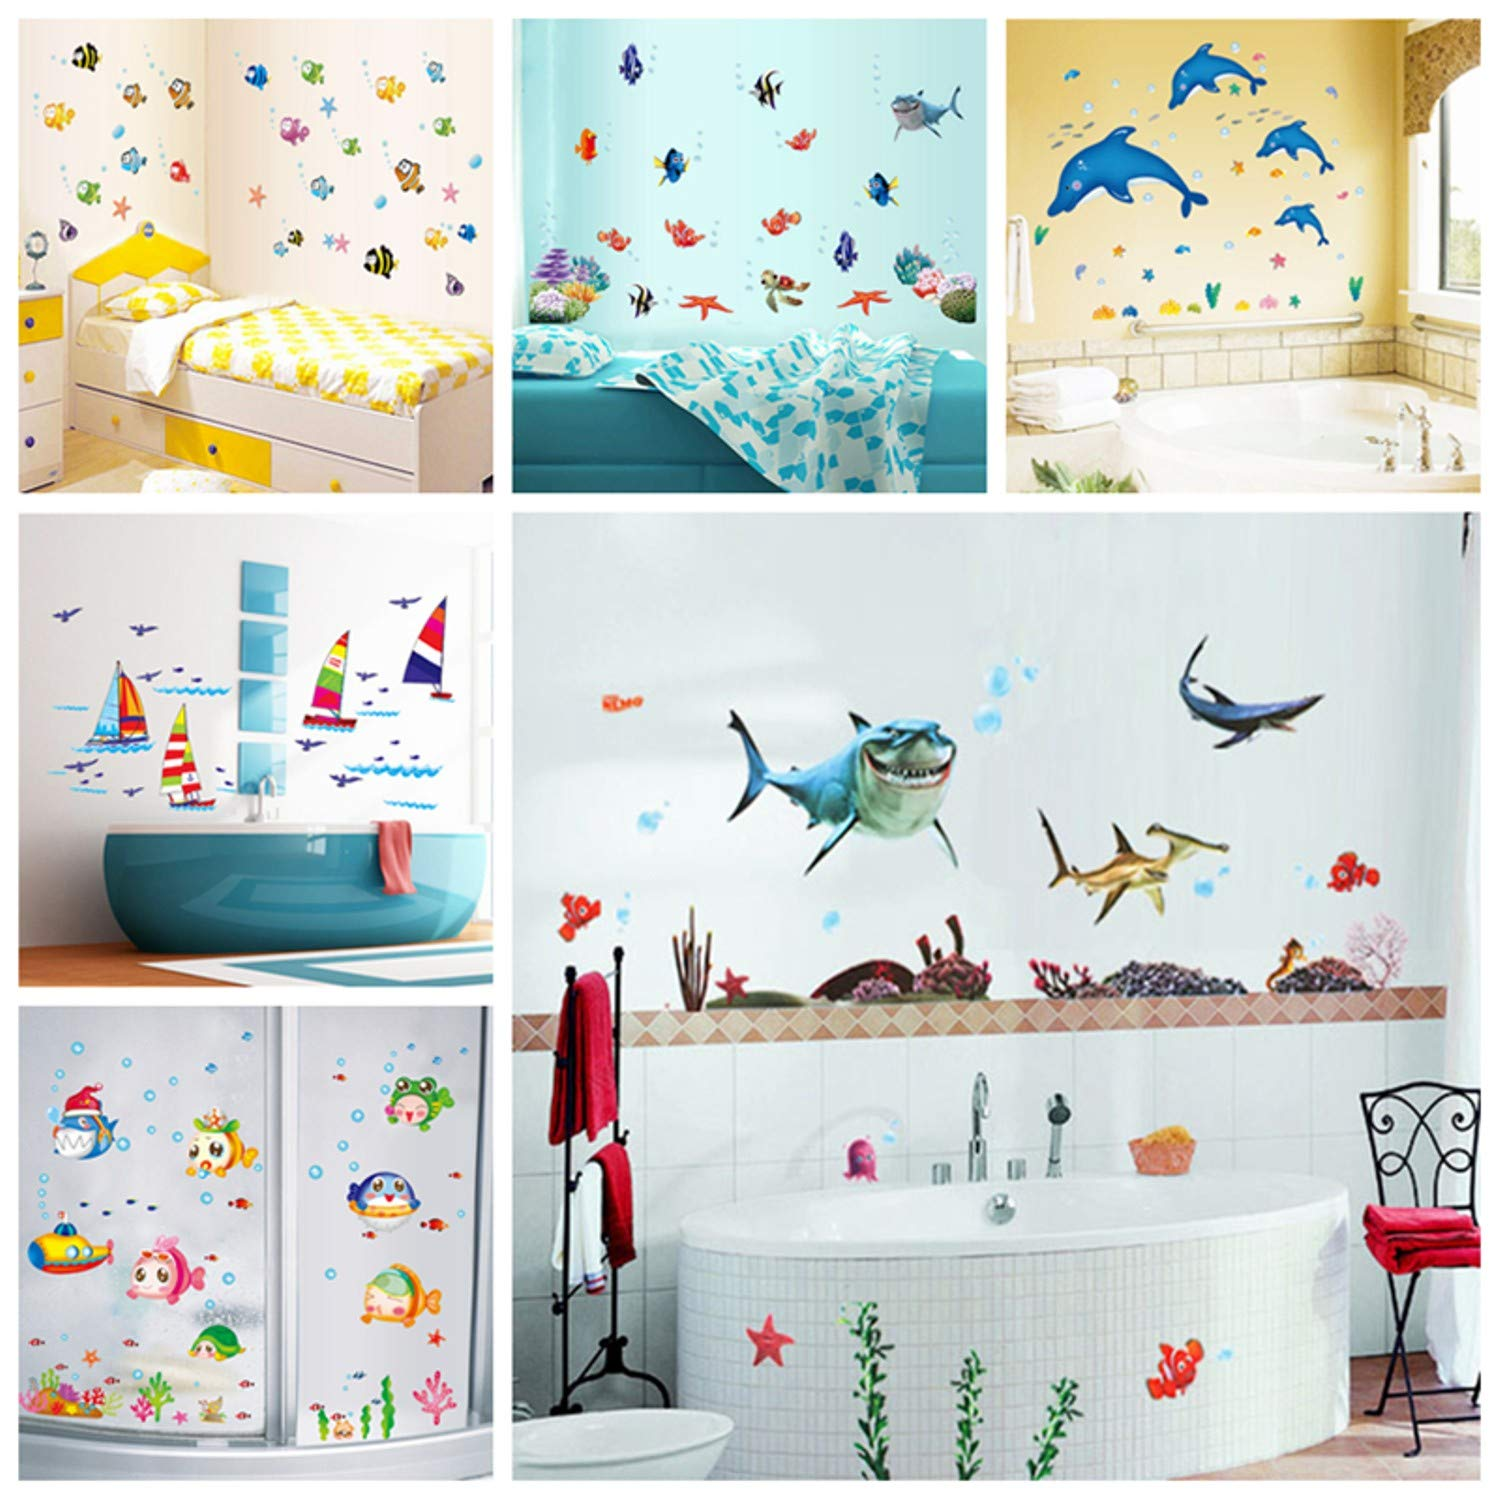 Amazon.com: Jewh Sticker Waterproof Wall Sticker - Water Resistant Wall Decal - Adhesive Children Home Decor - Mural Bathroom Fish Kids Room (xl7225): Home ...